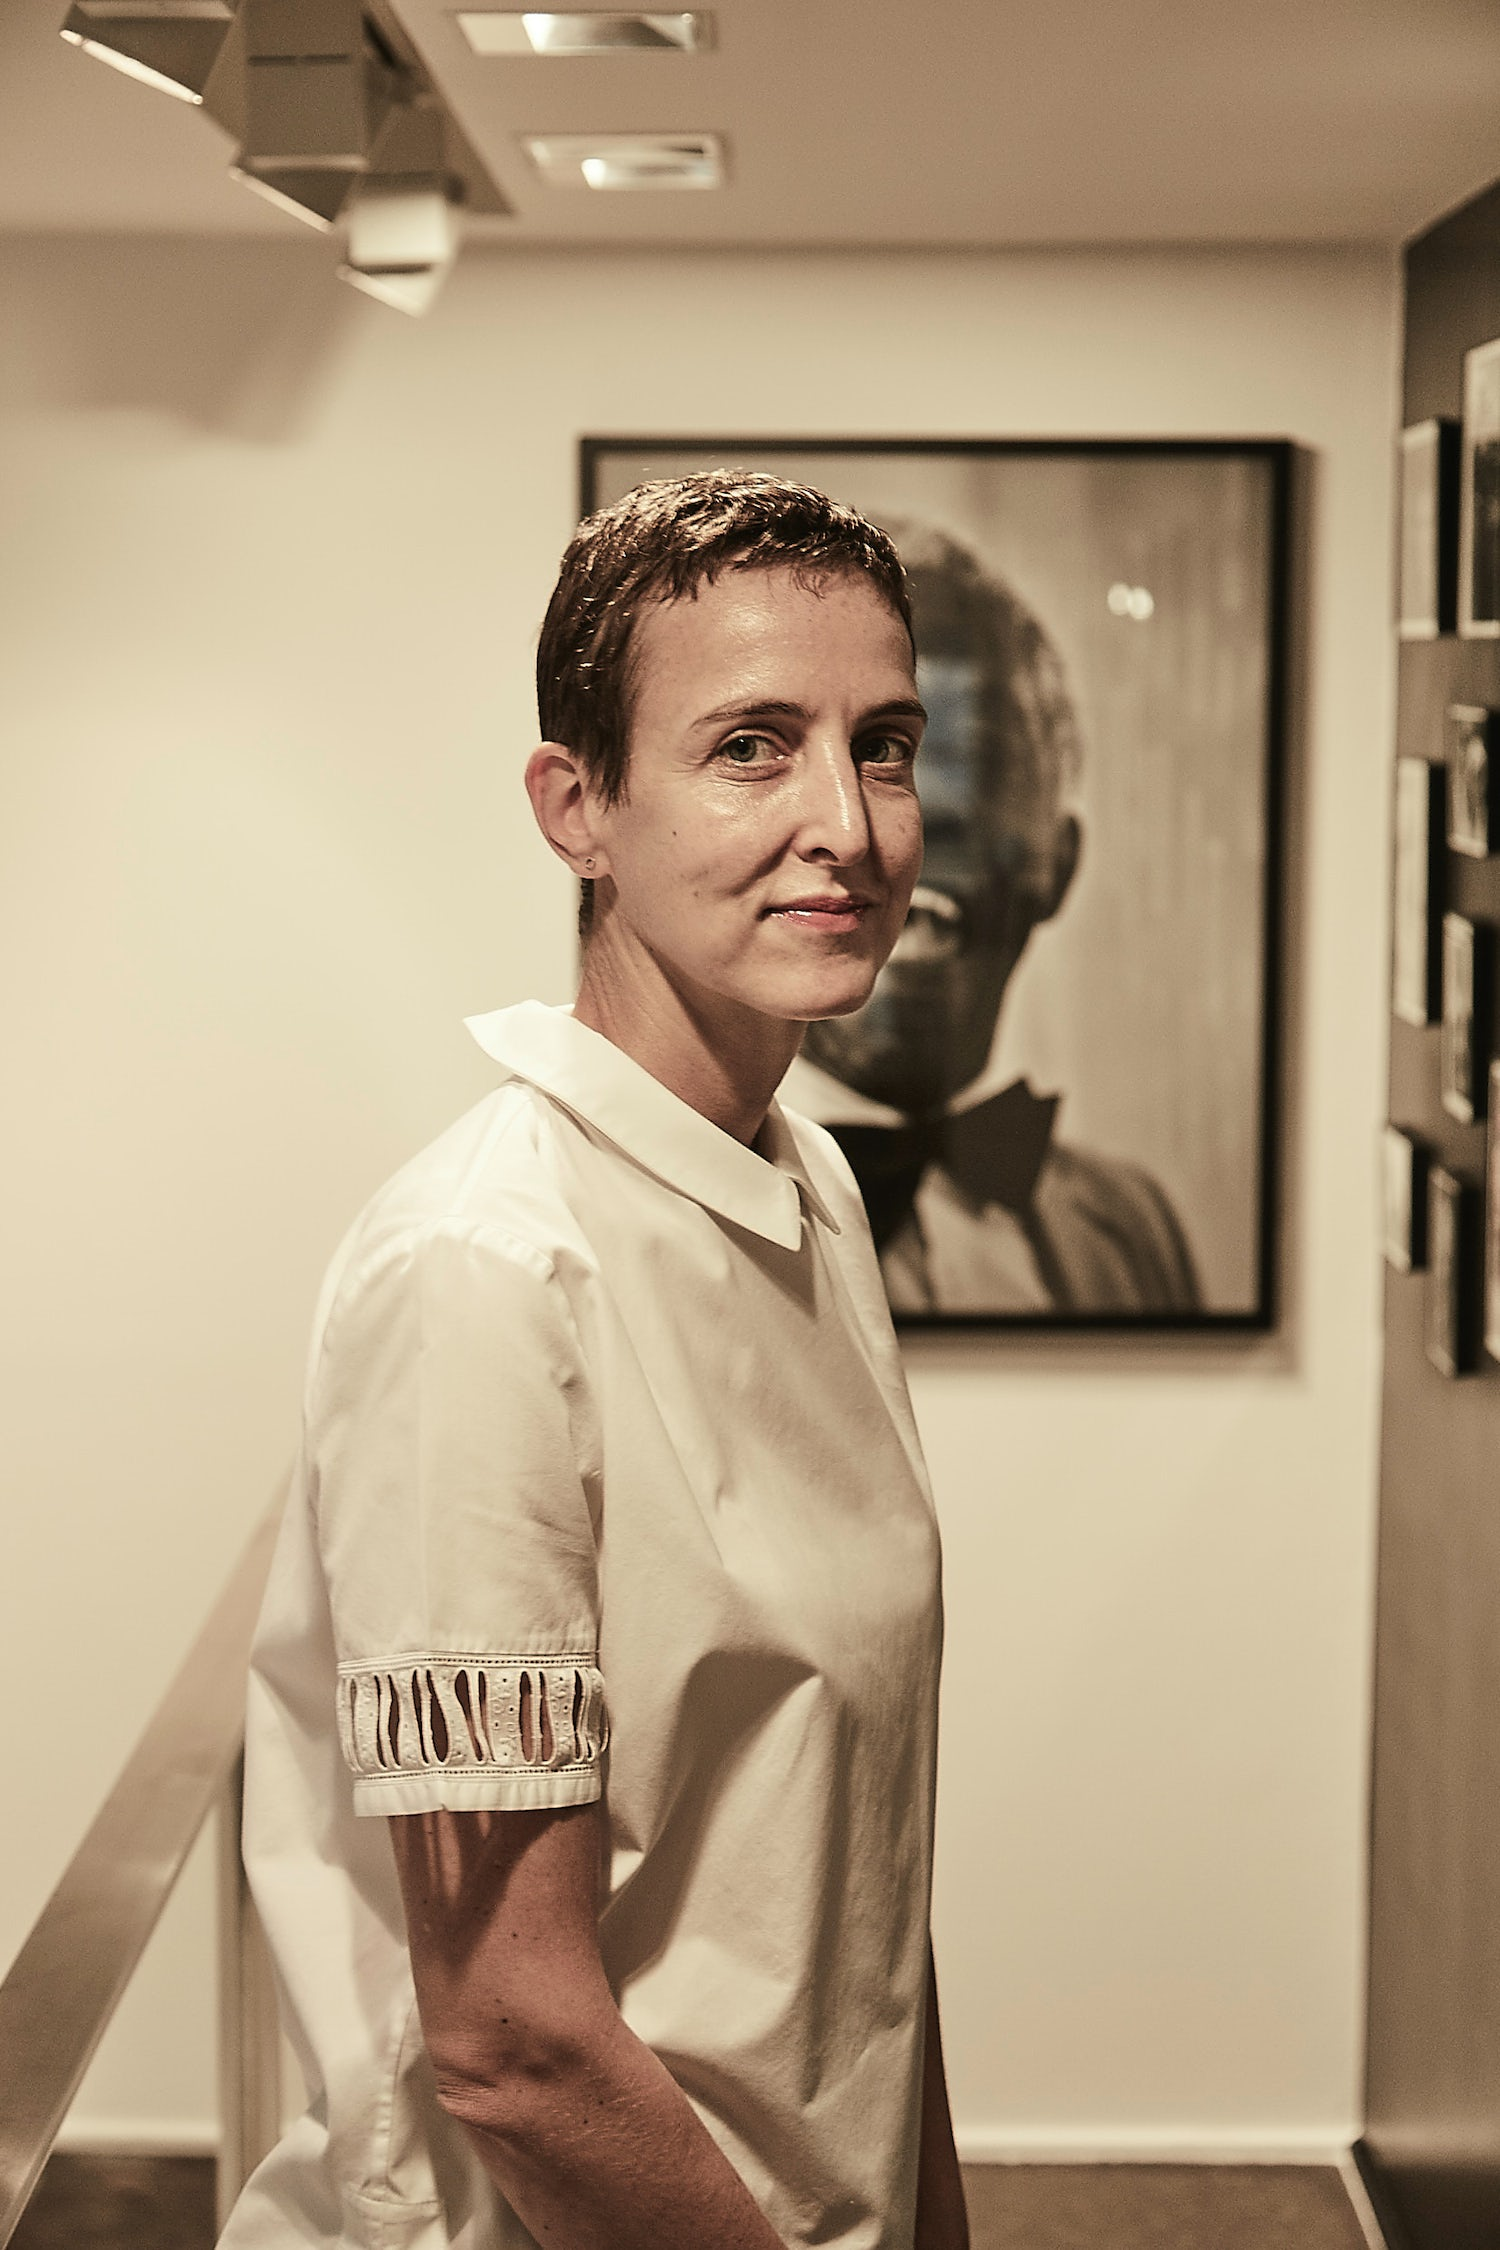 Sarah Andelman, co-founder of Colette | Photo: Fe Pinheiro for BoF